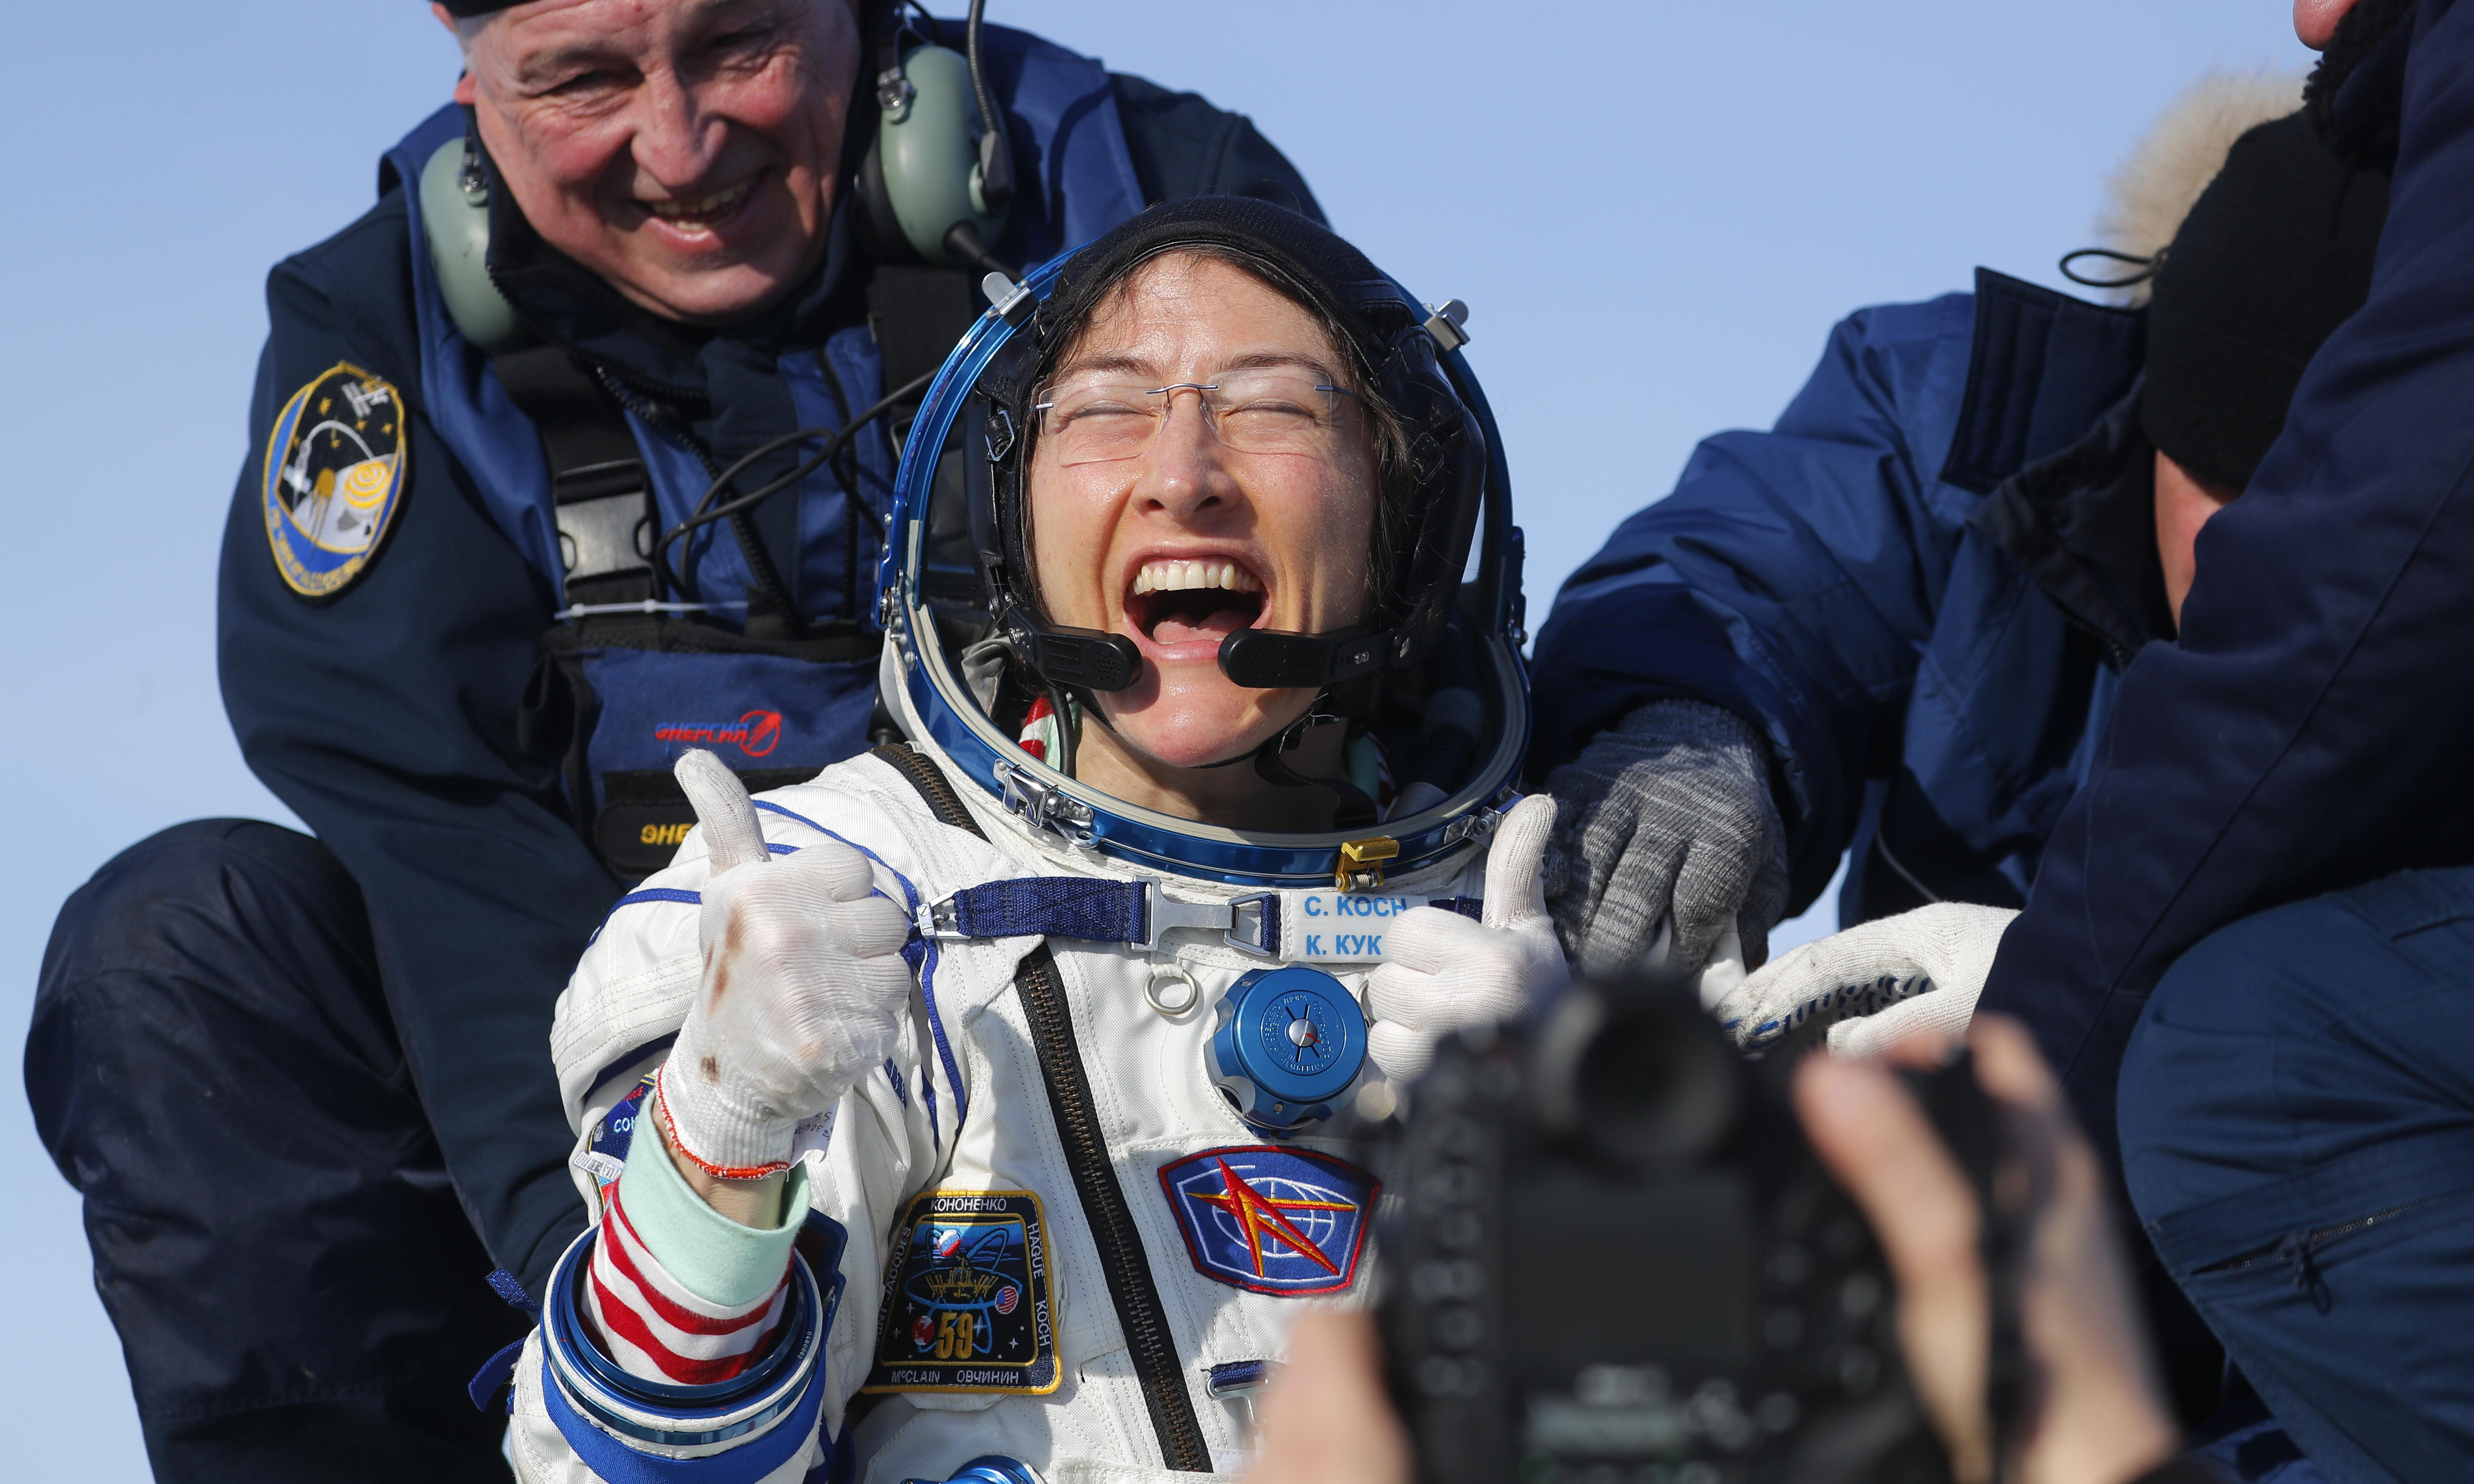 Christina Koch returns to Earth after record-breaking space mission